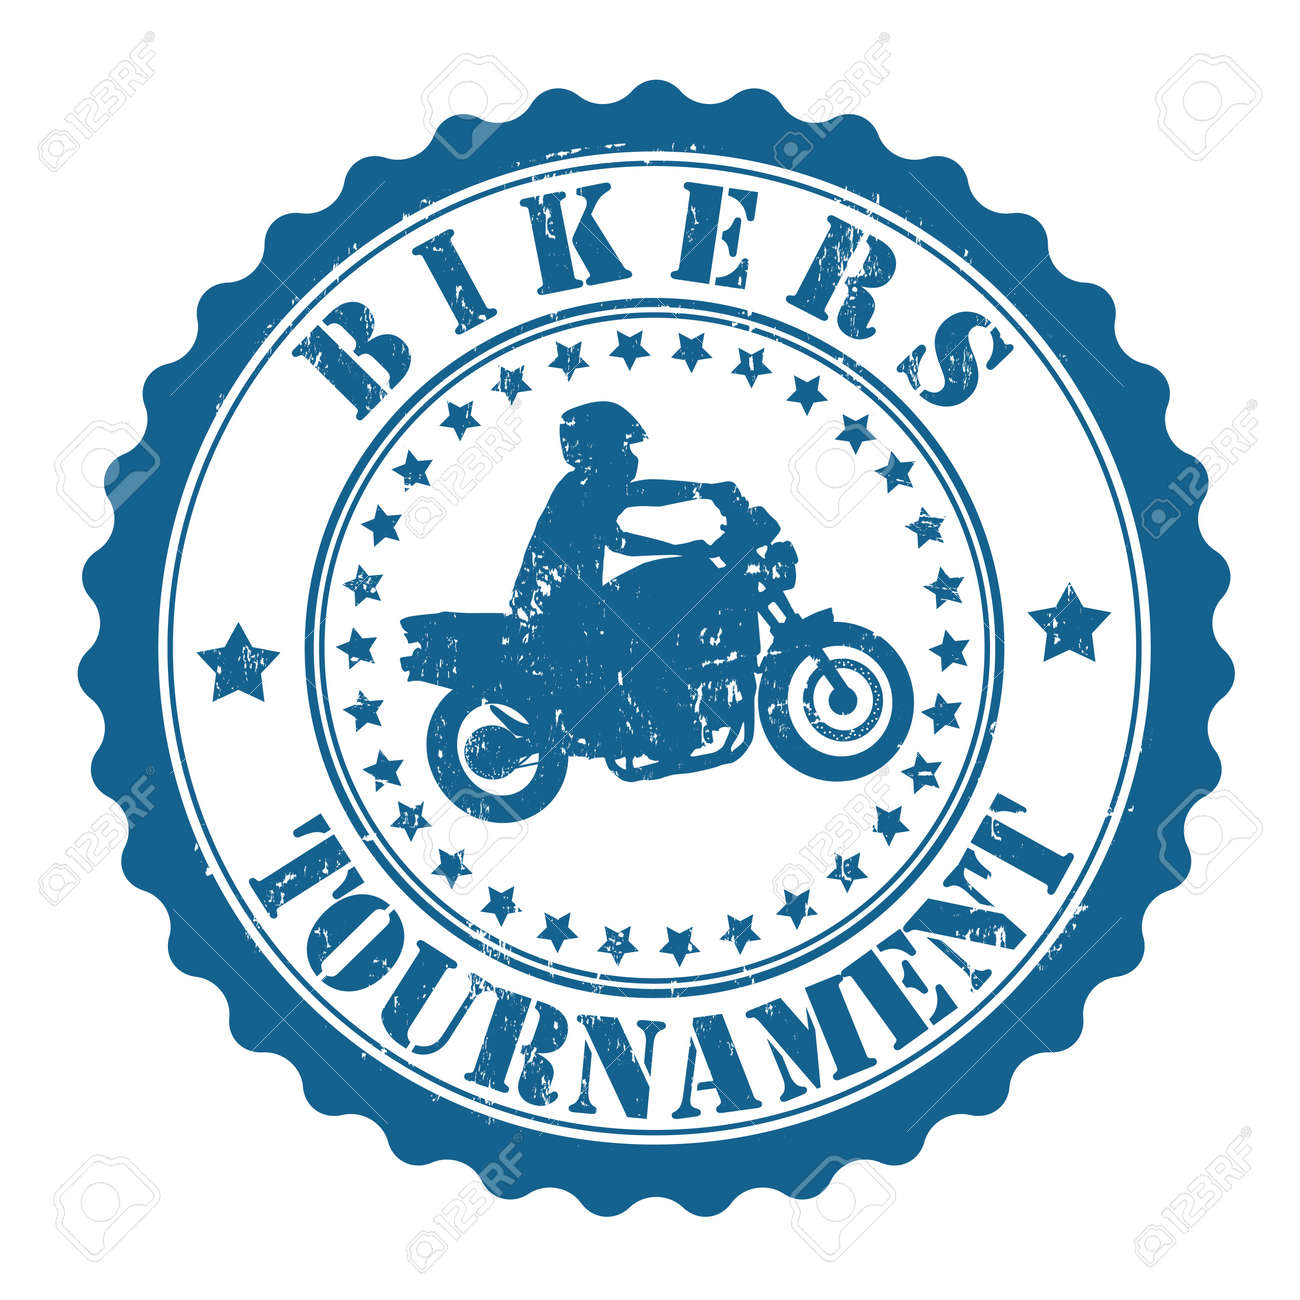 Bikers Tournament grunge rubber stamp on white Stock Vector - 21895524